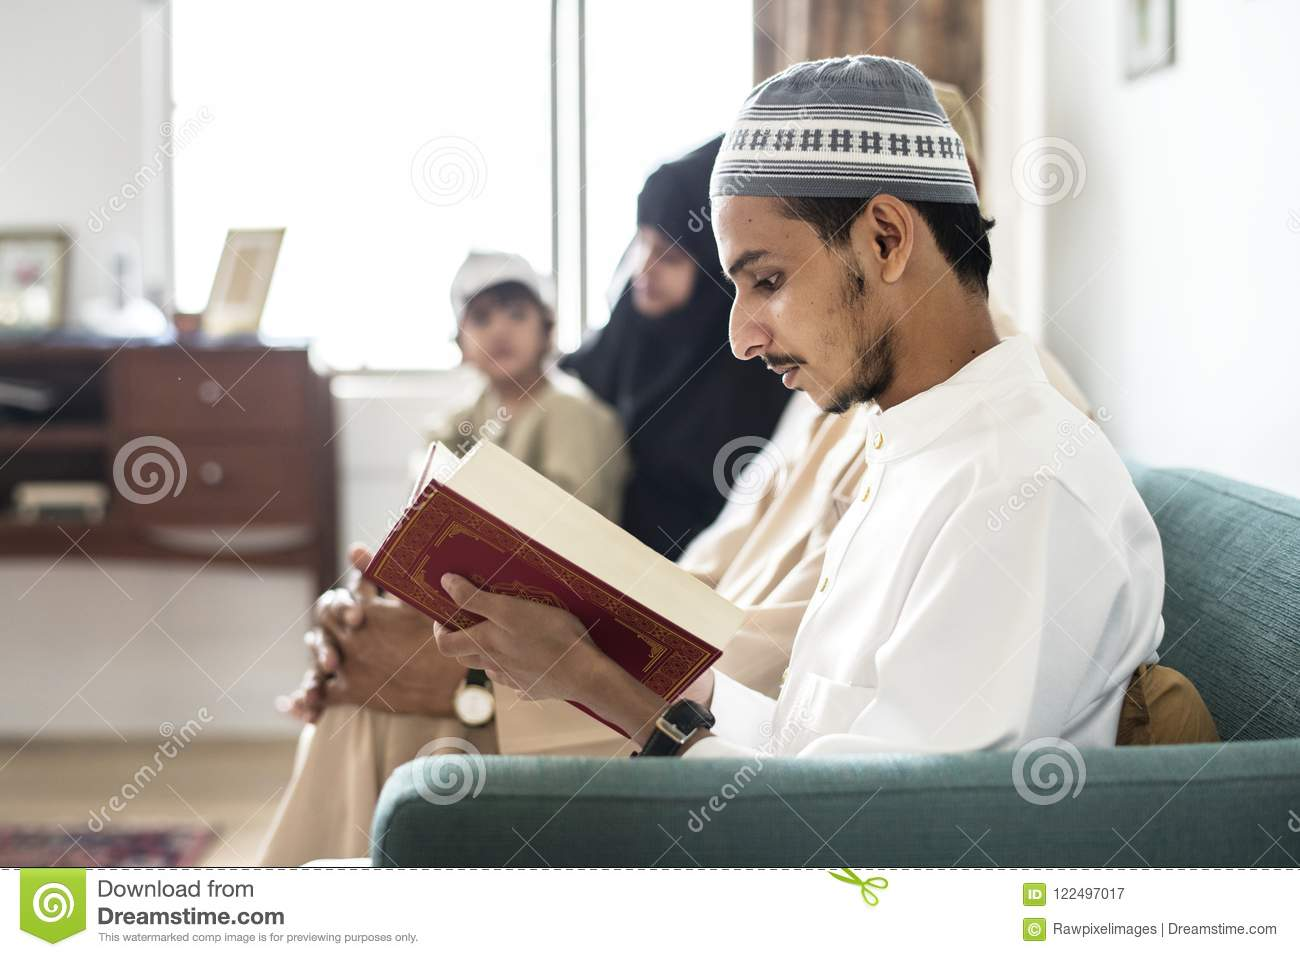 Muslims Reading From The Quran At Home Stock Image - Image of mosque